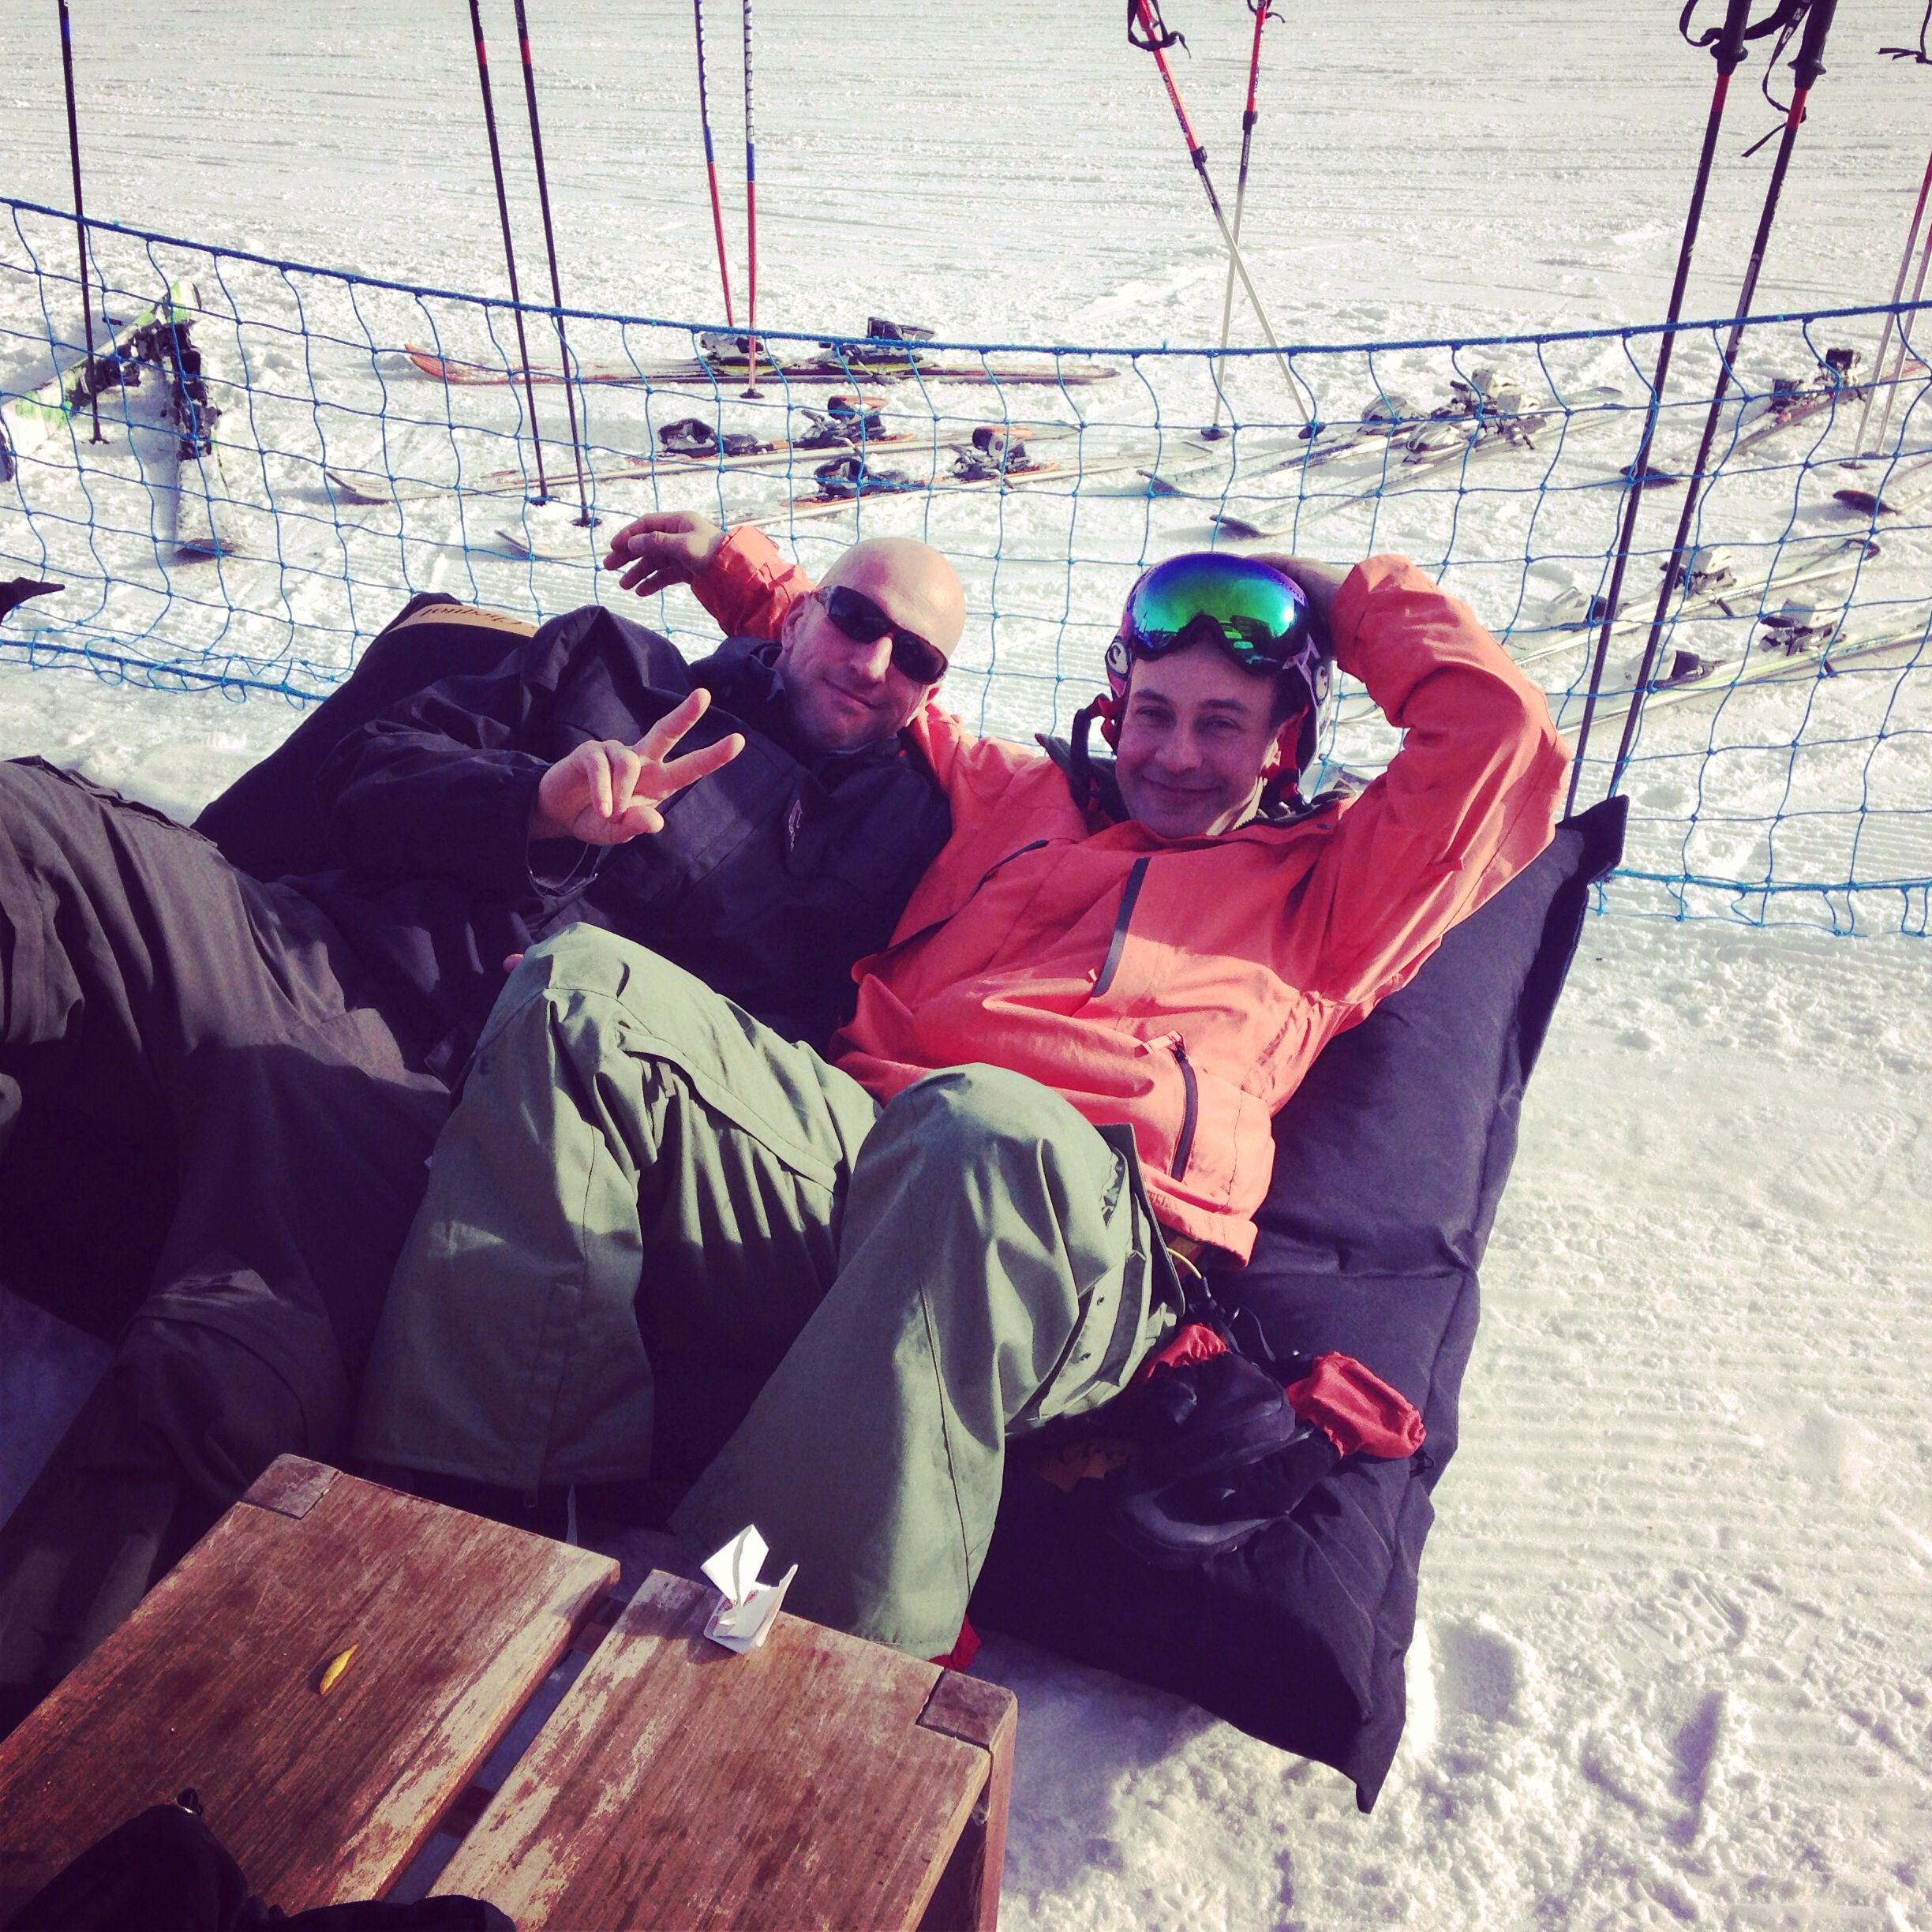 Chilling on the slopes